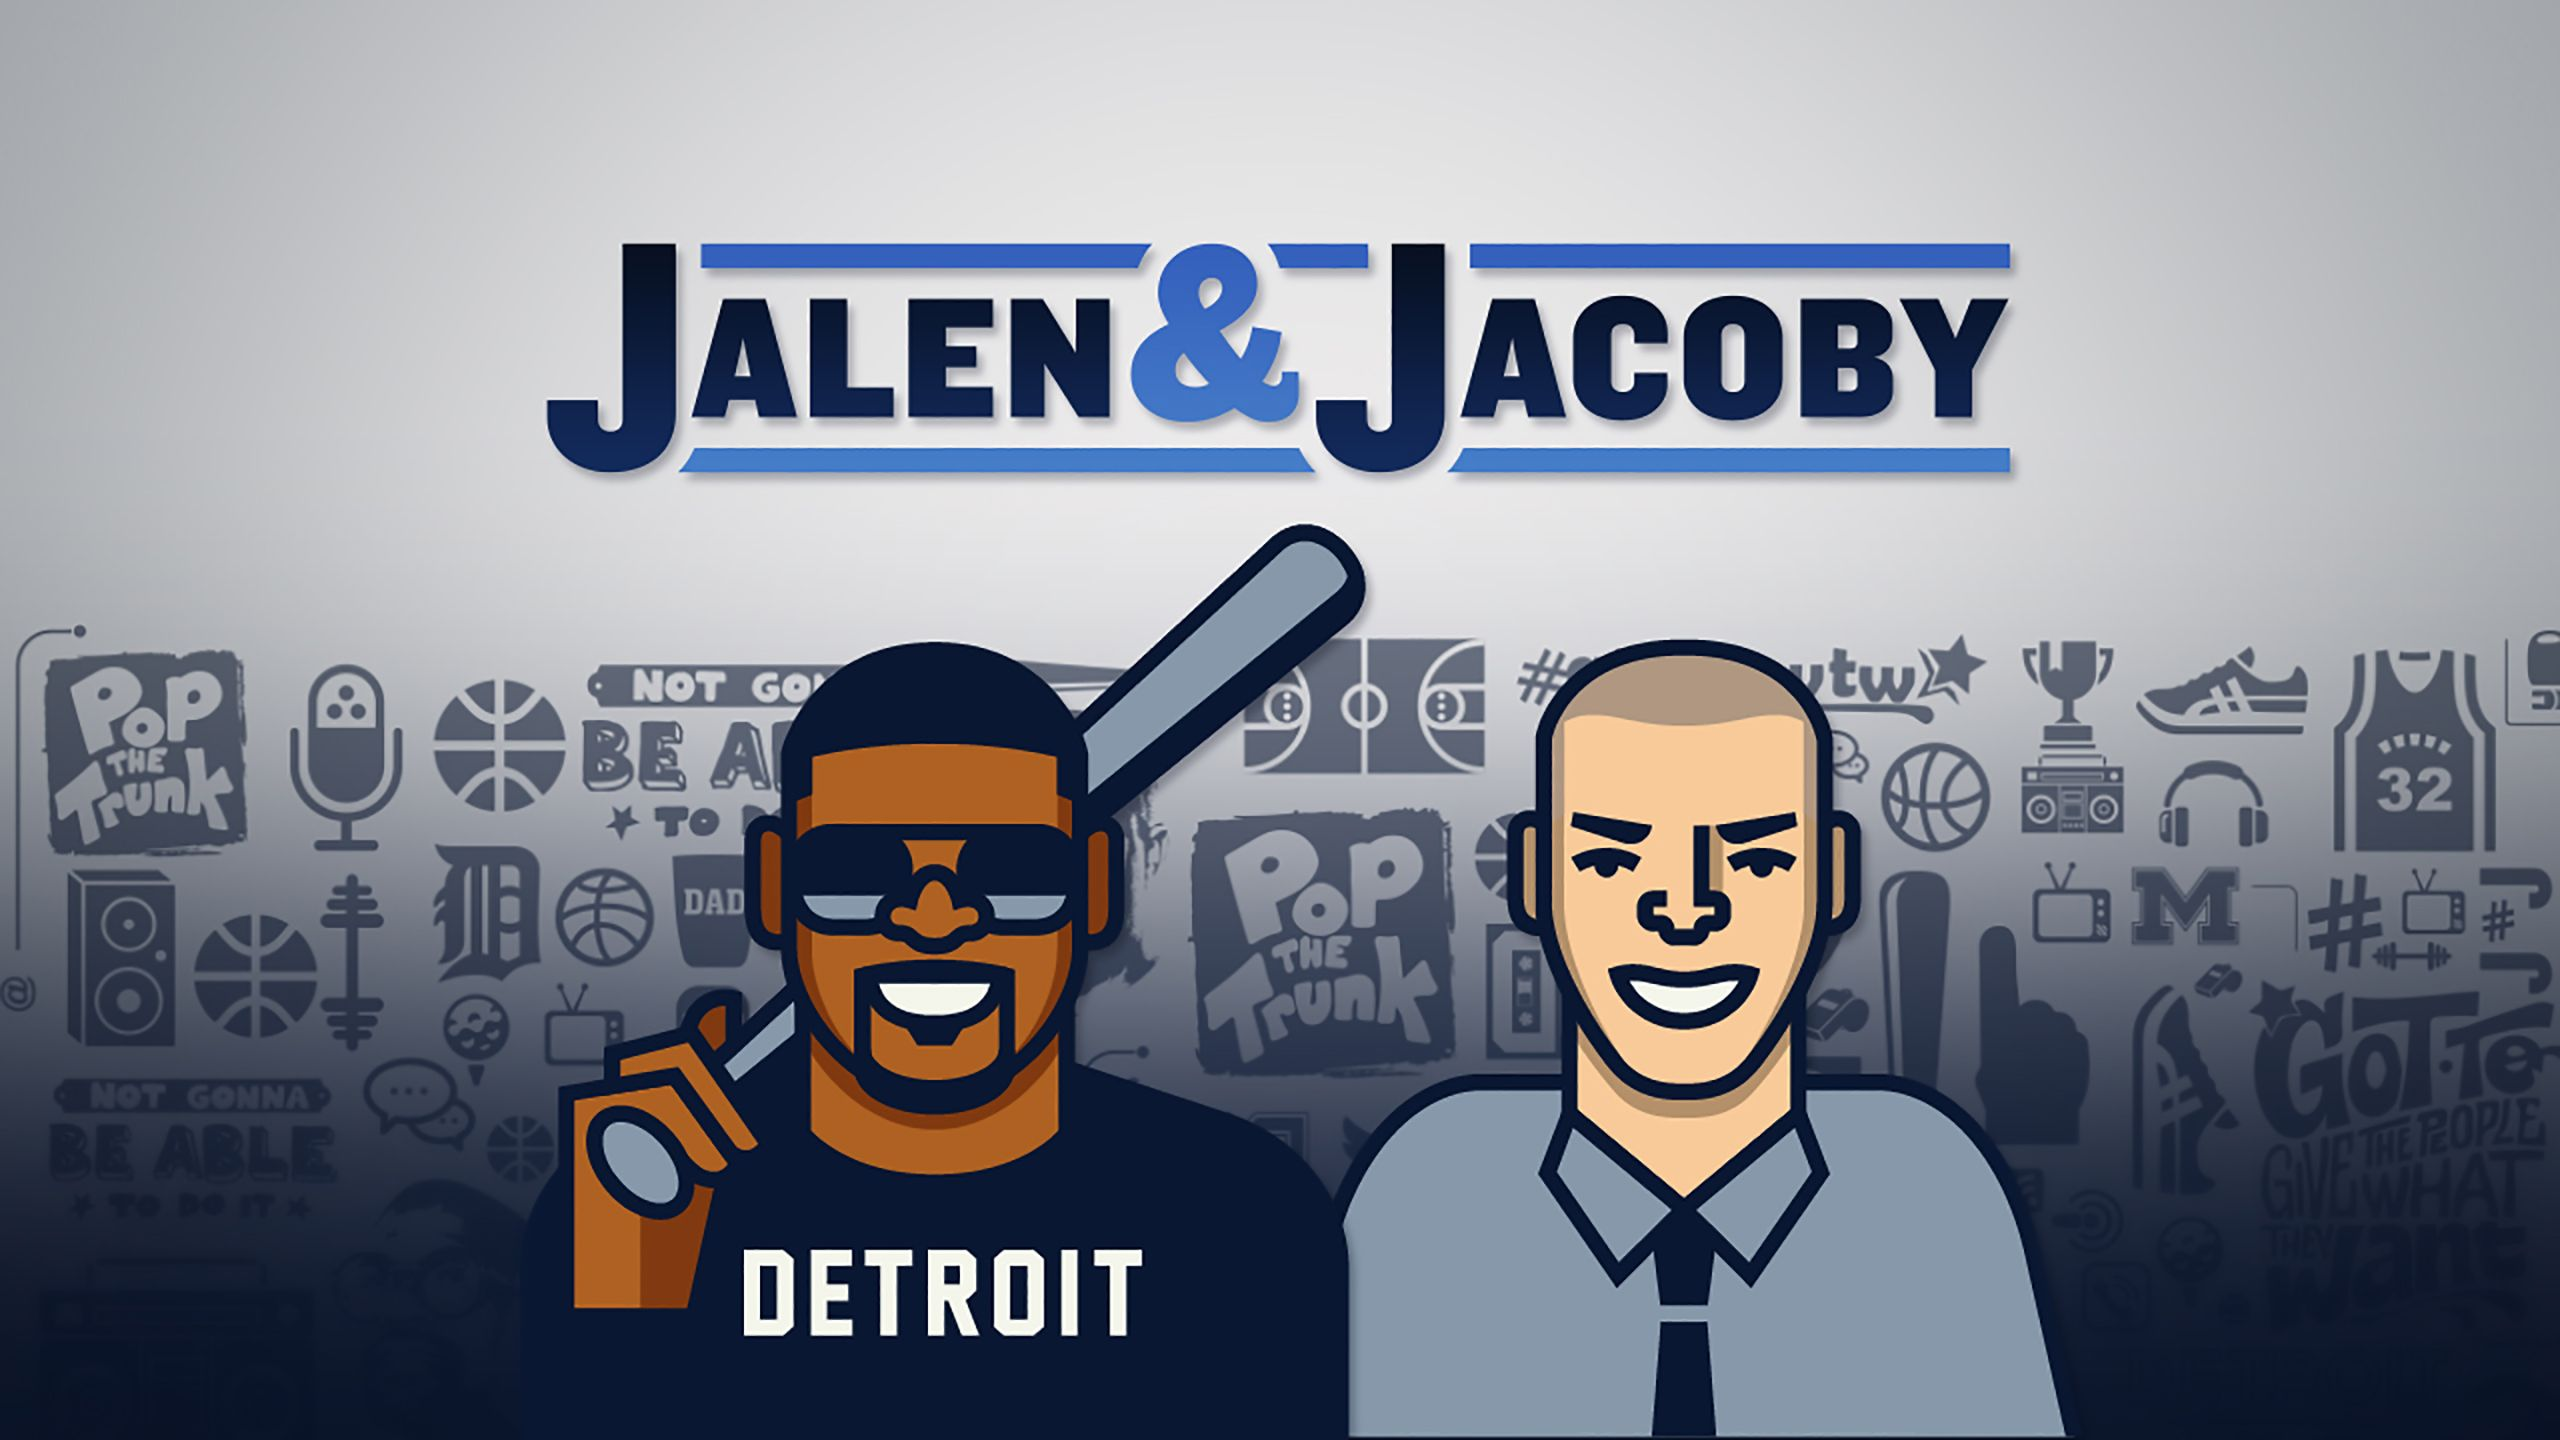 Wed, 5/16 - Jalen & Jacoby